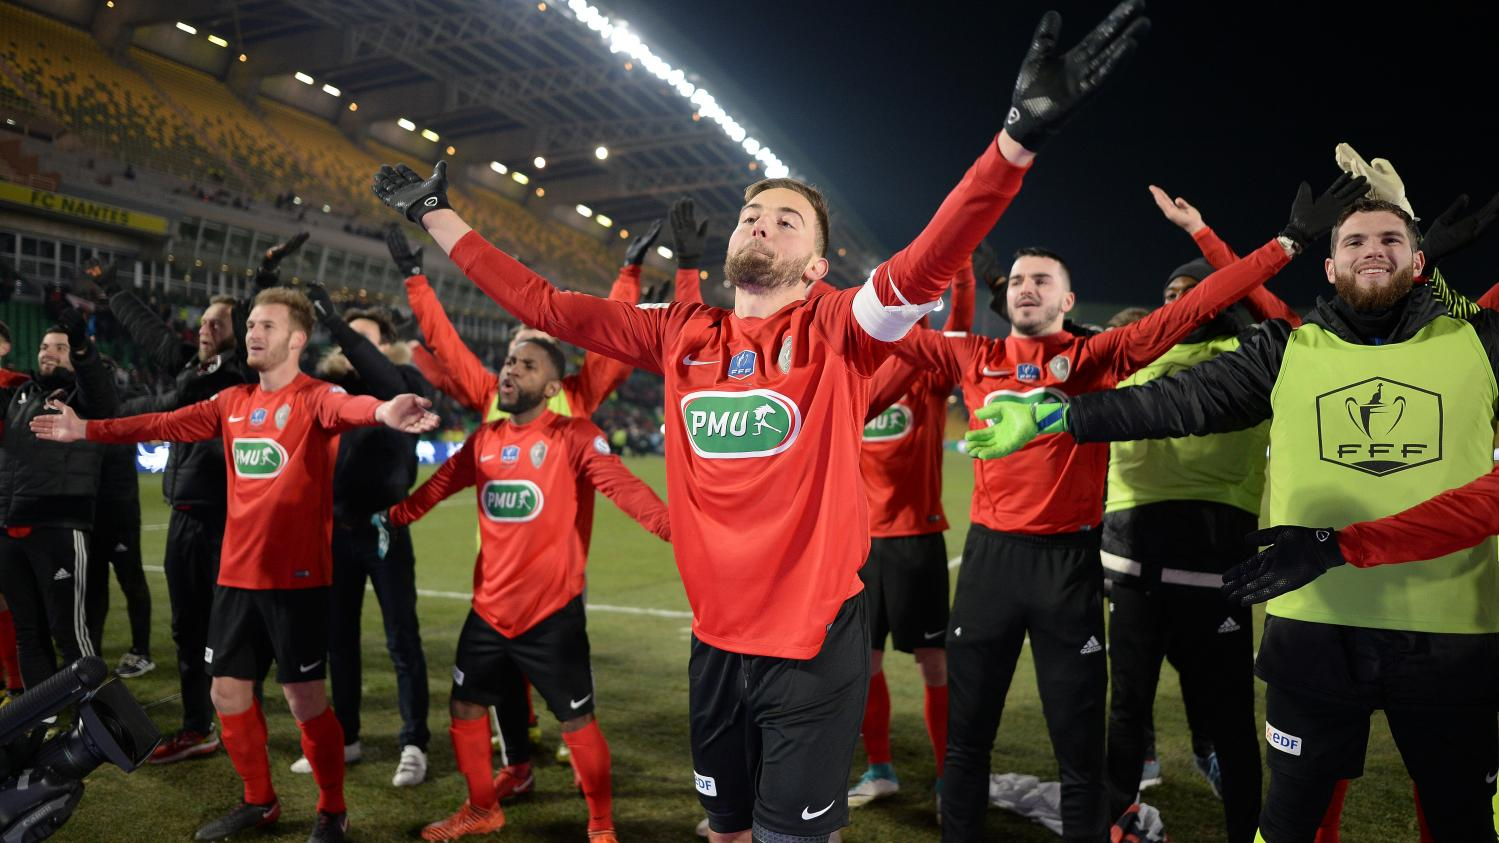 Coupe de france les herbiers en finale - Coupe de france foot en direct ...